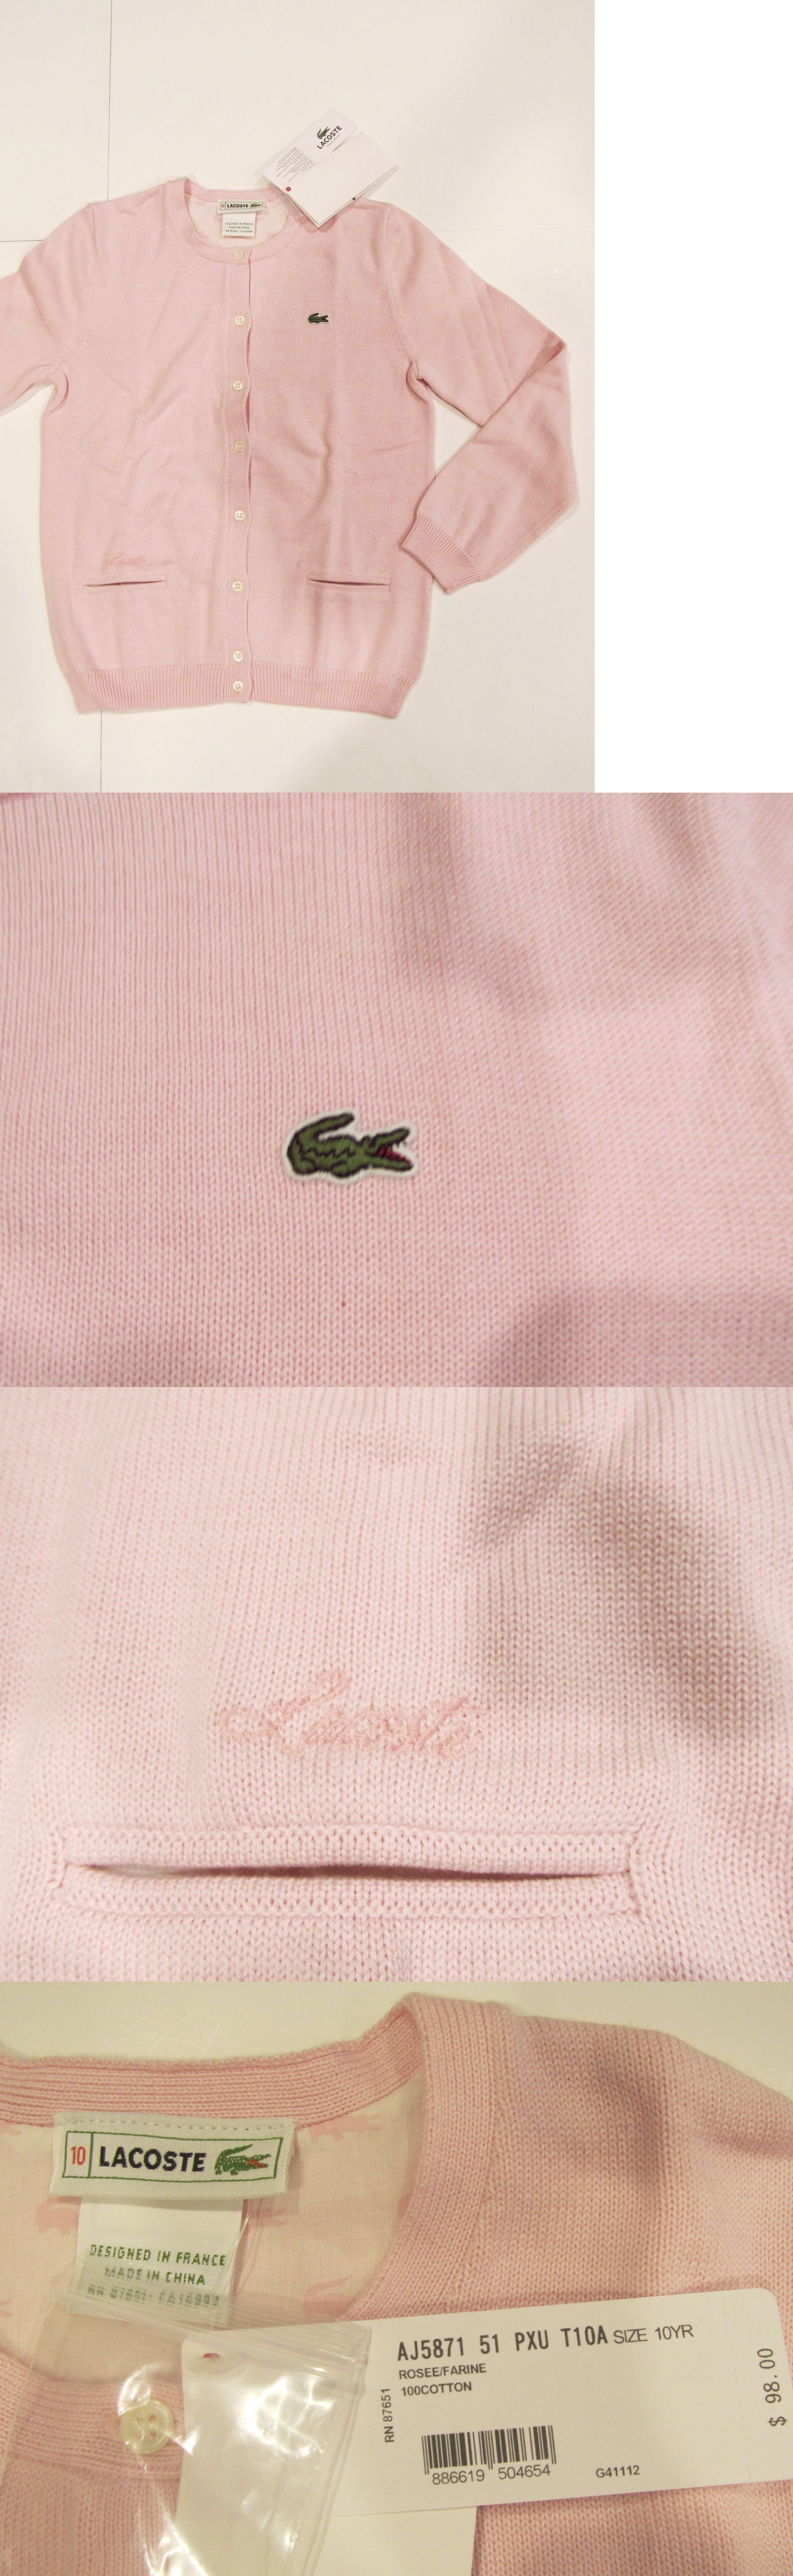 Sweaters 51582: New With Tag Nwt Girls Lacoste Pink Longslv Crewneck Cardigan Winter Sweater 12 -> BUY IT NOW ONLY: $39.99 on eBay!